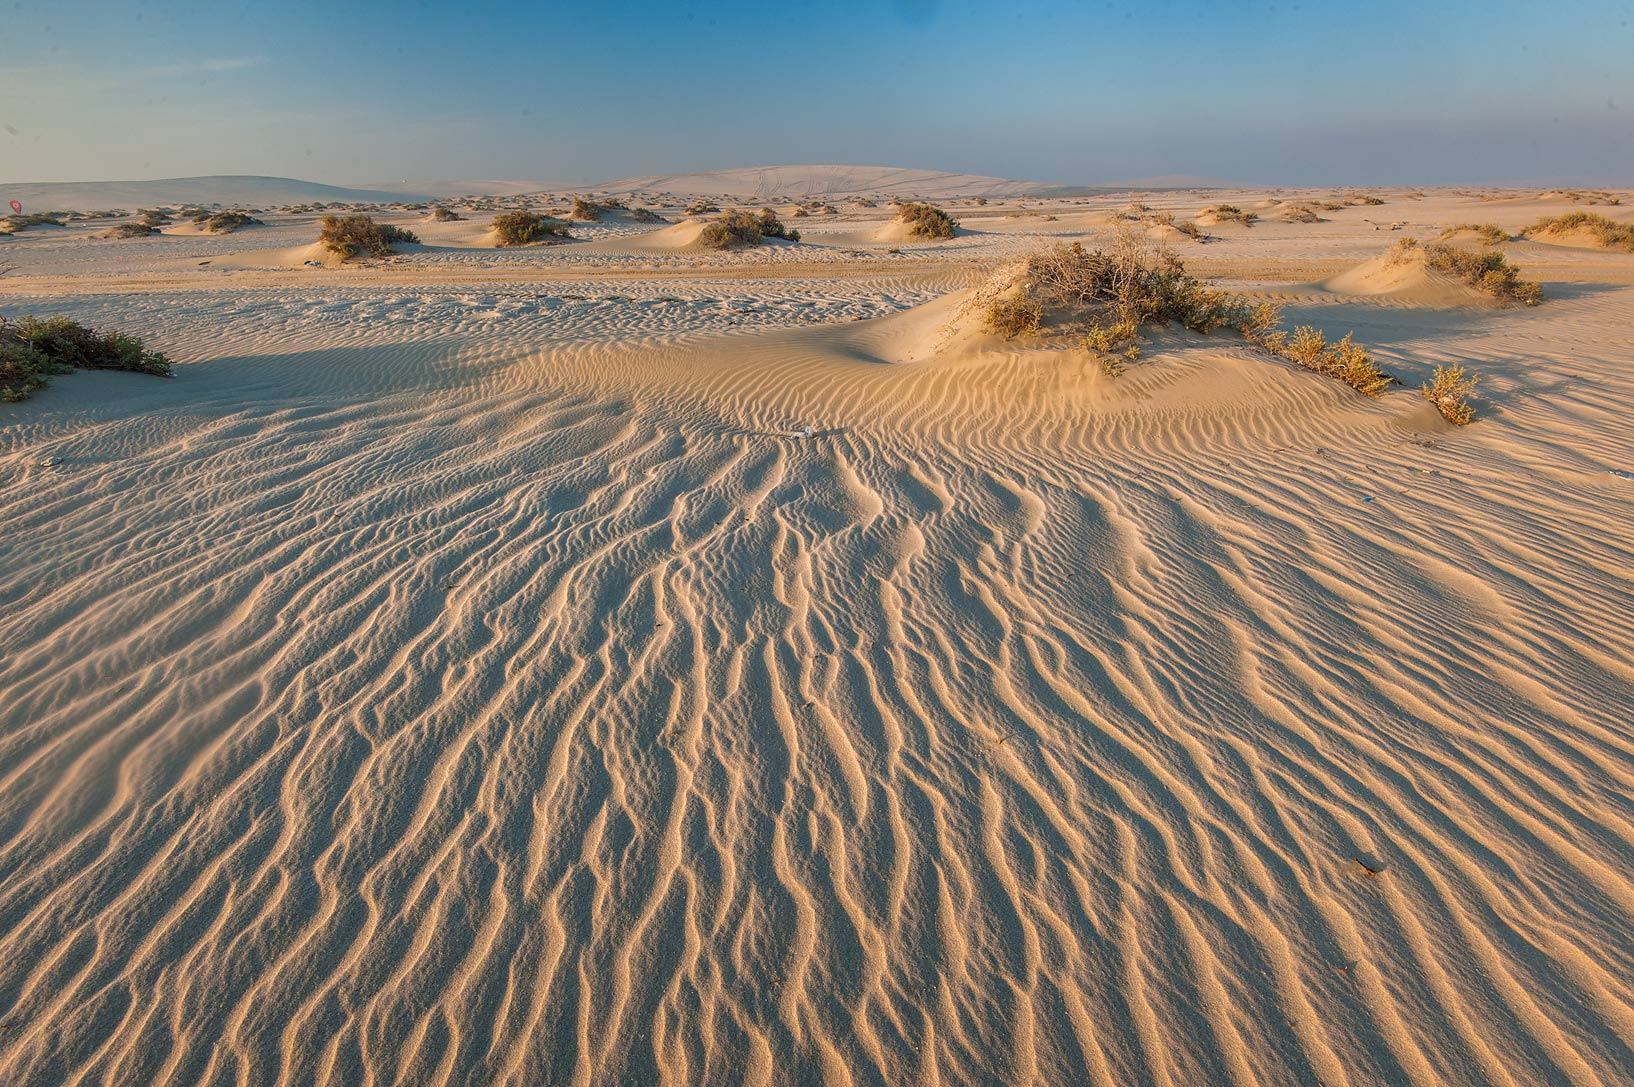 Wavy sand ripples and low mounds with plants of...Resort near Mesaieed. Southern Qatar